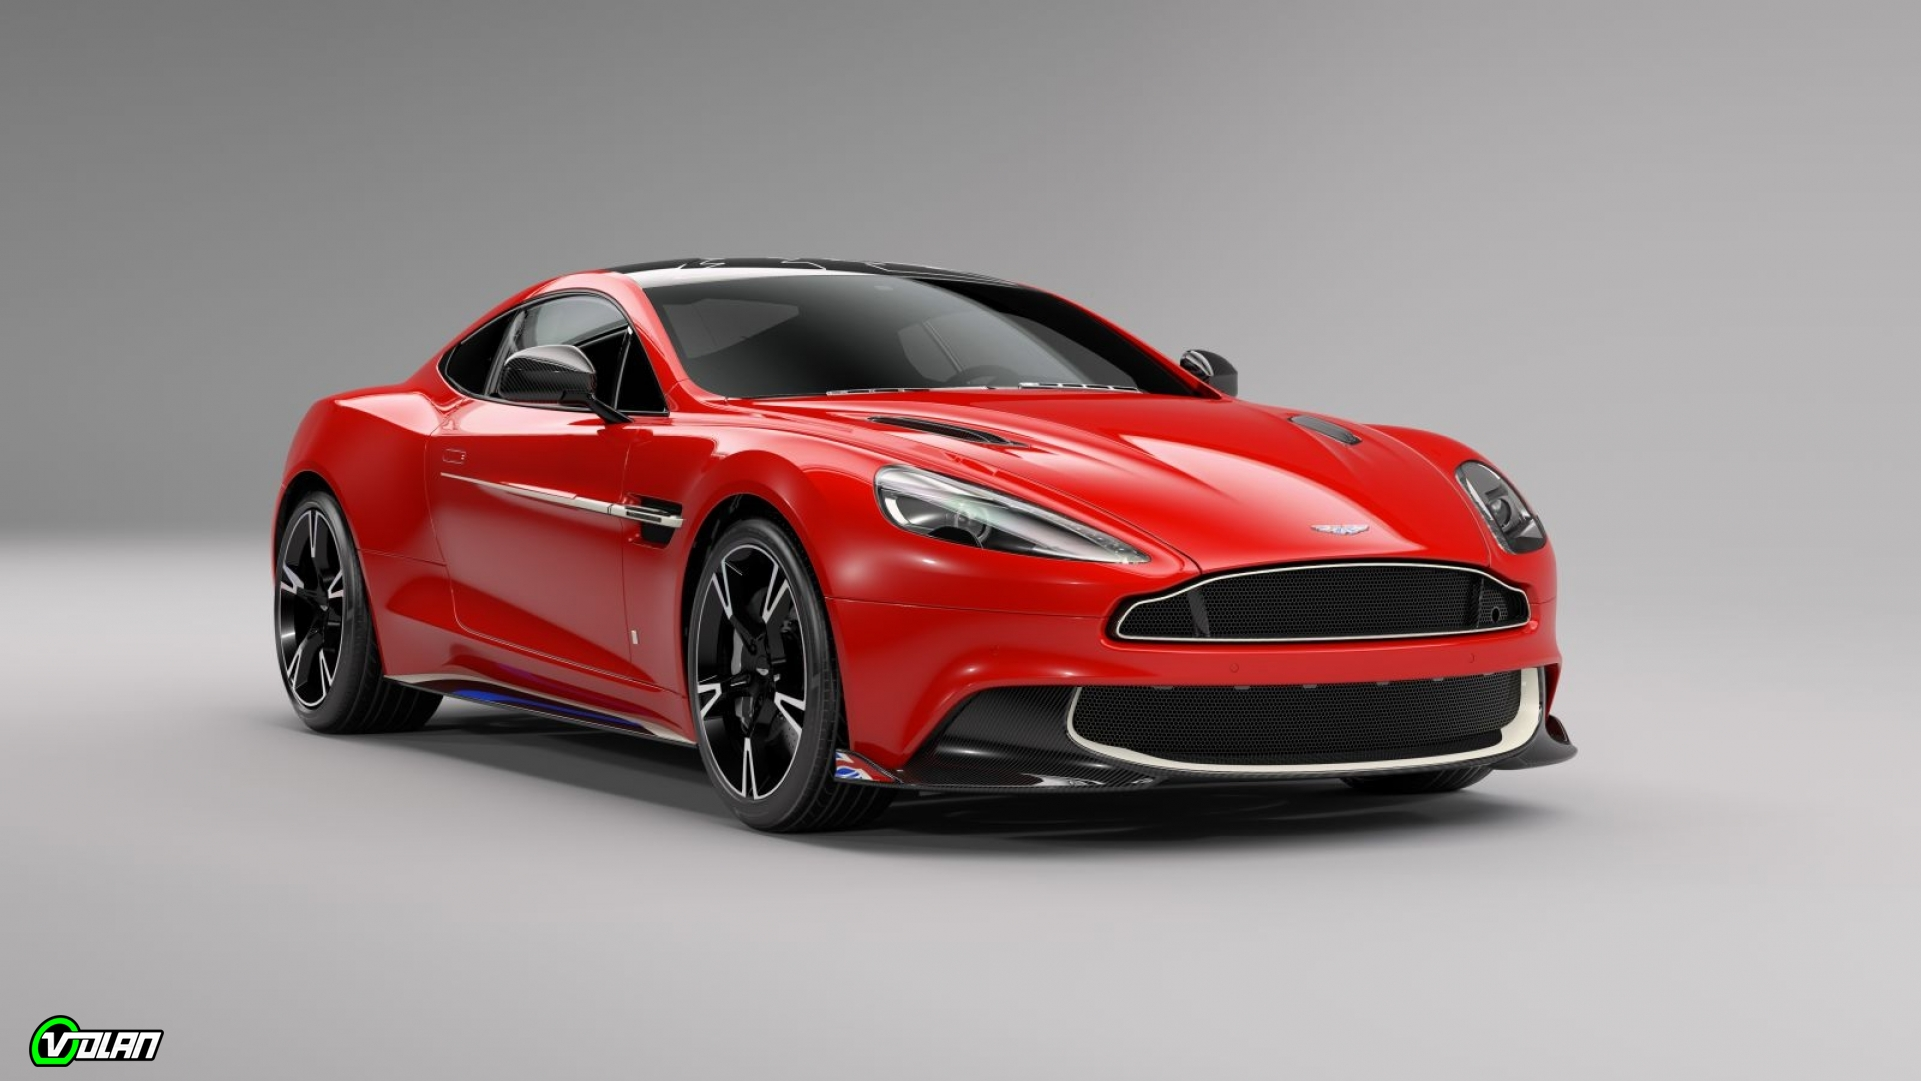 Aston martin vanquish S red arrows edition Zgolj deset primerkov